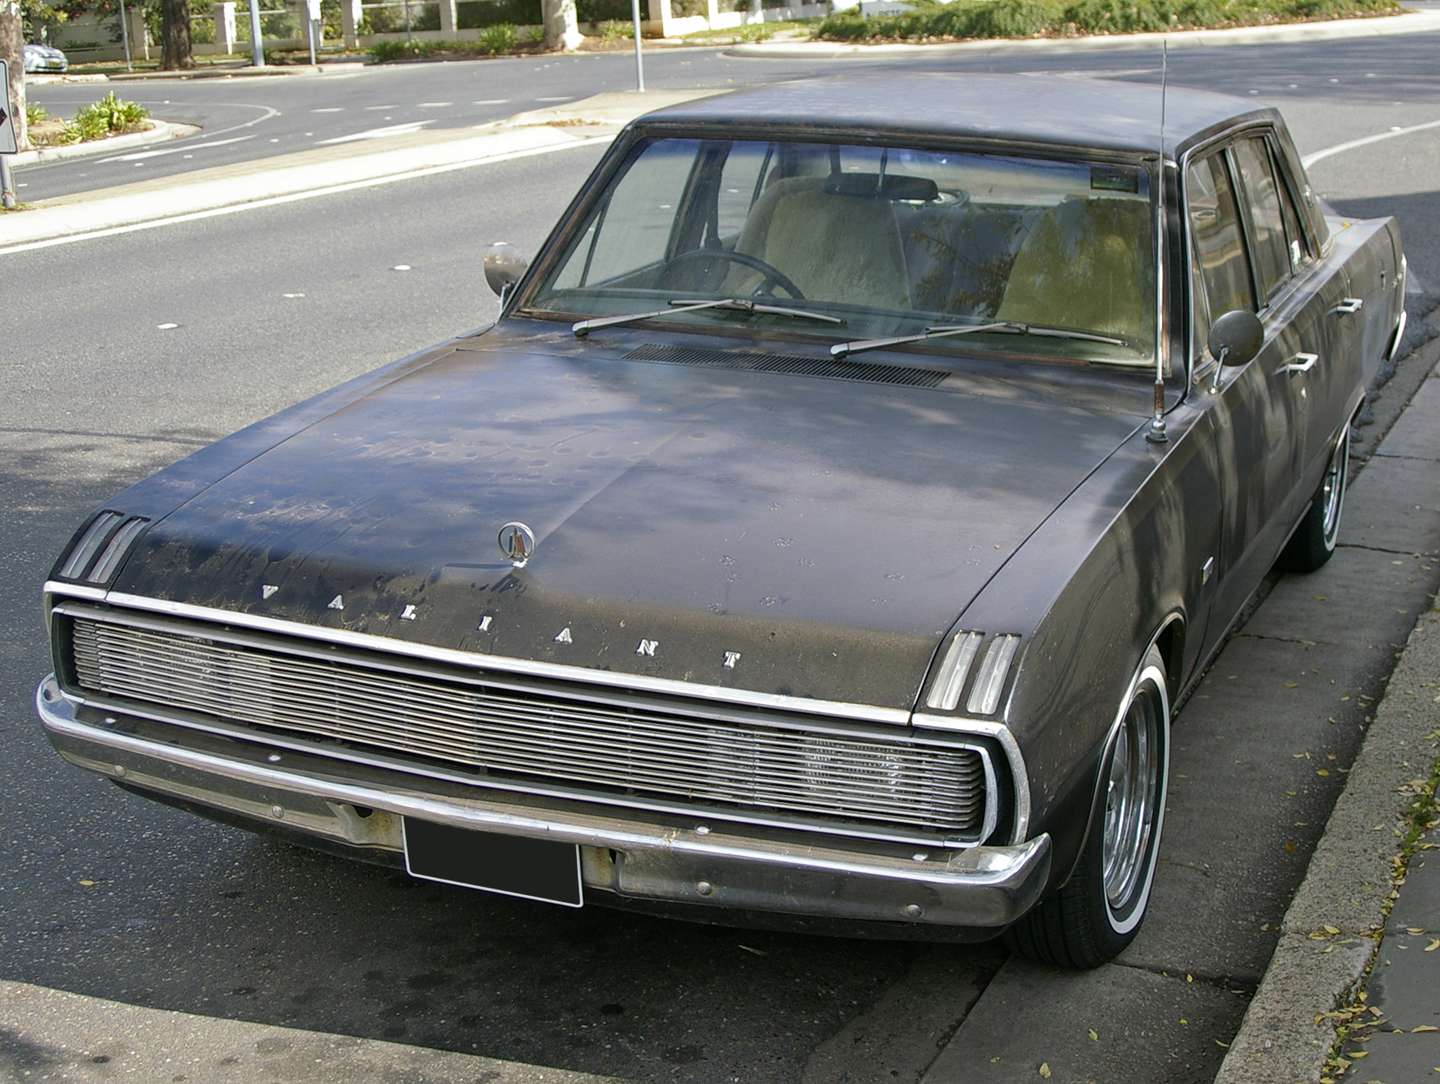 Chrysler Valiant #9103869